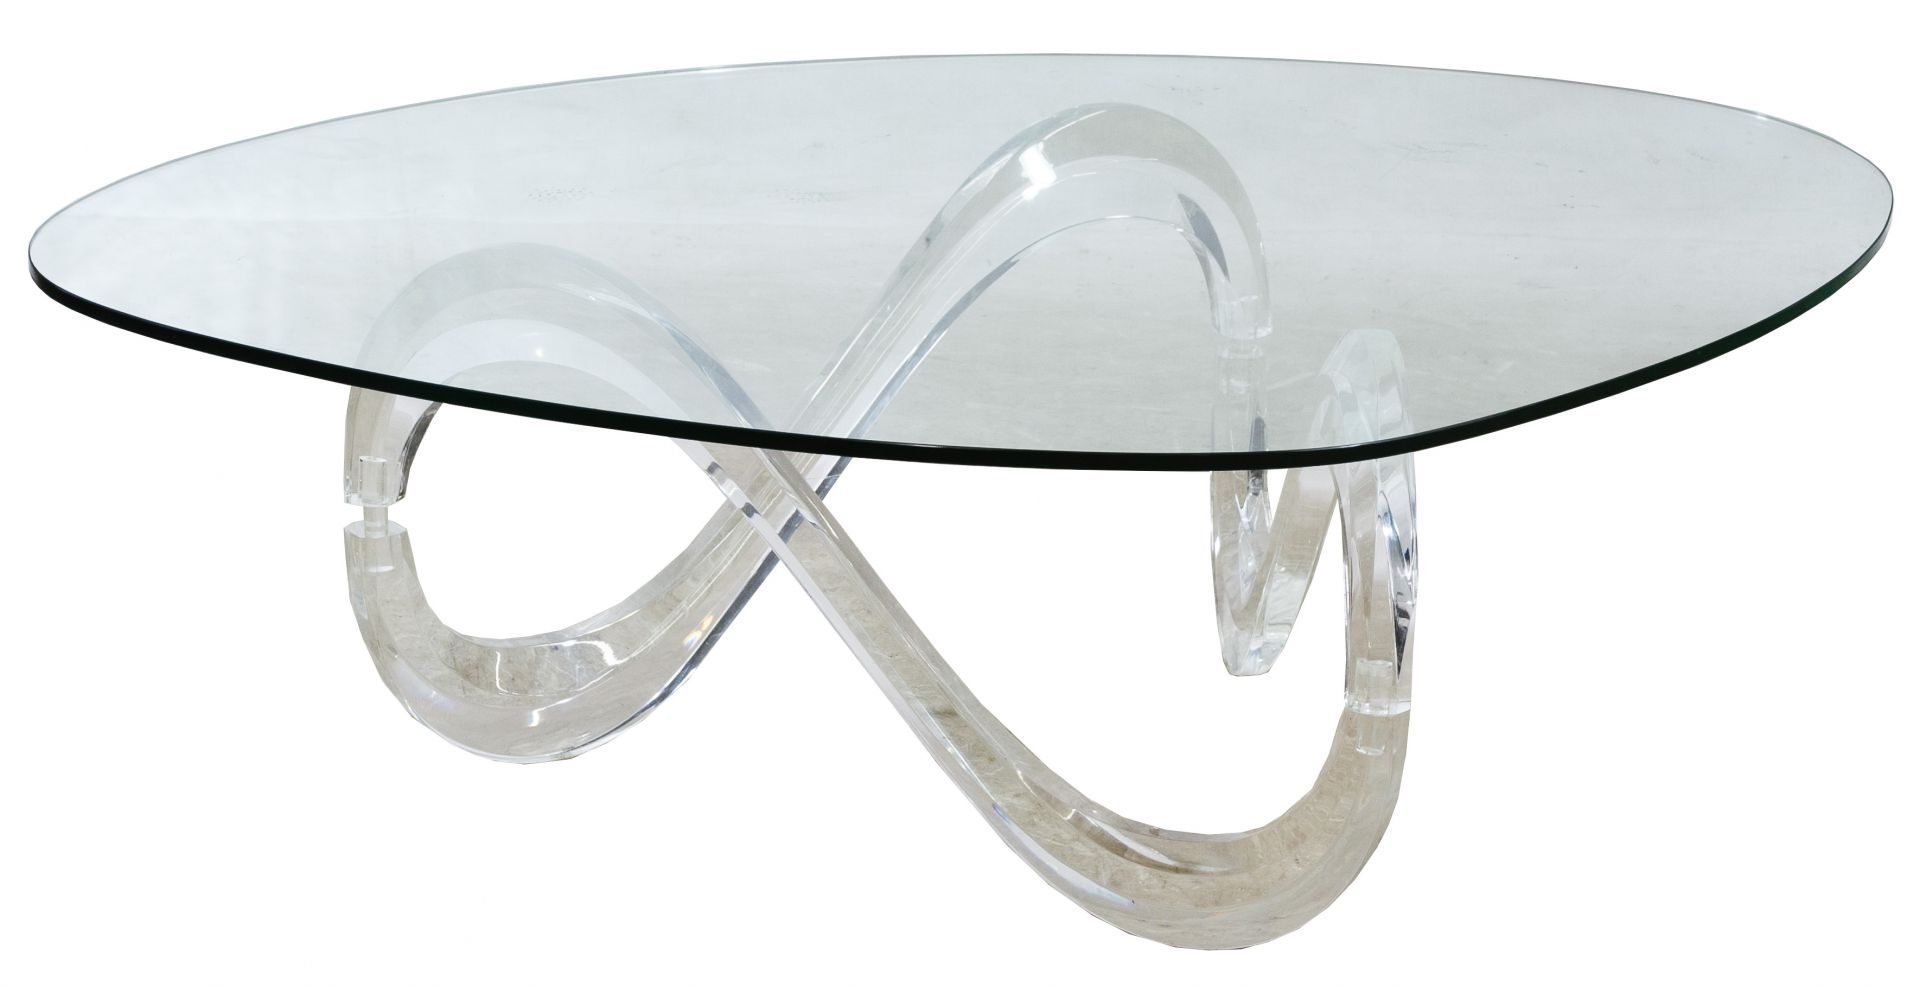 Lot 67 Mcm Style Lucite And Glass Coffee Table Having Undulating Lucite Legs Holding A Rounded Triangular Glass T Coffee Table Glass Coffee Table Lucite Legs [ 987 x 1920 Pixel ]